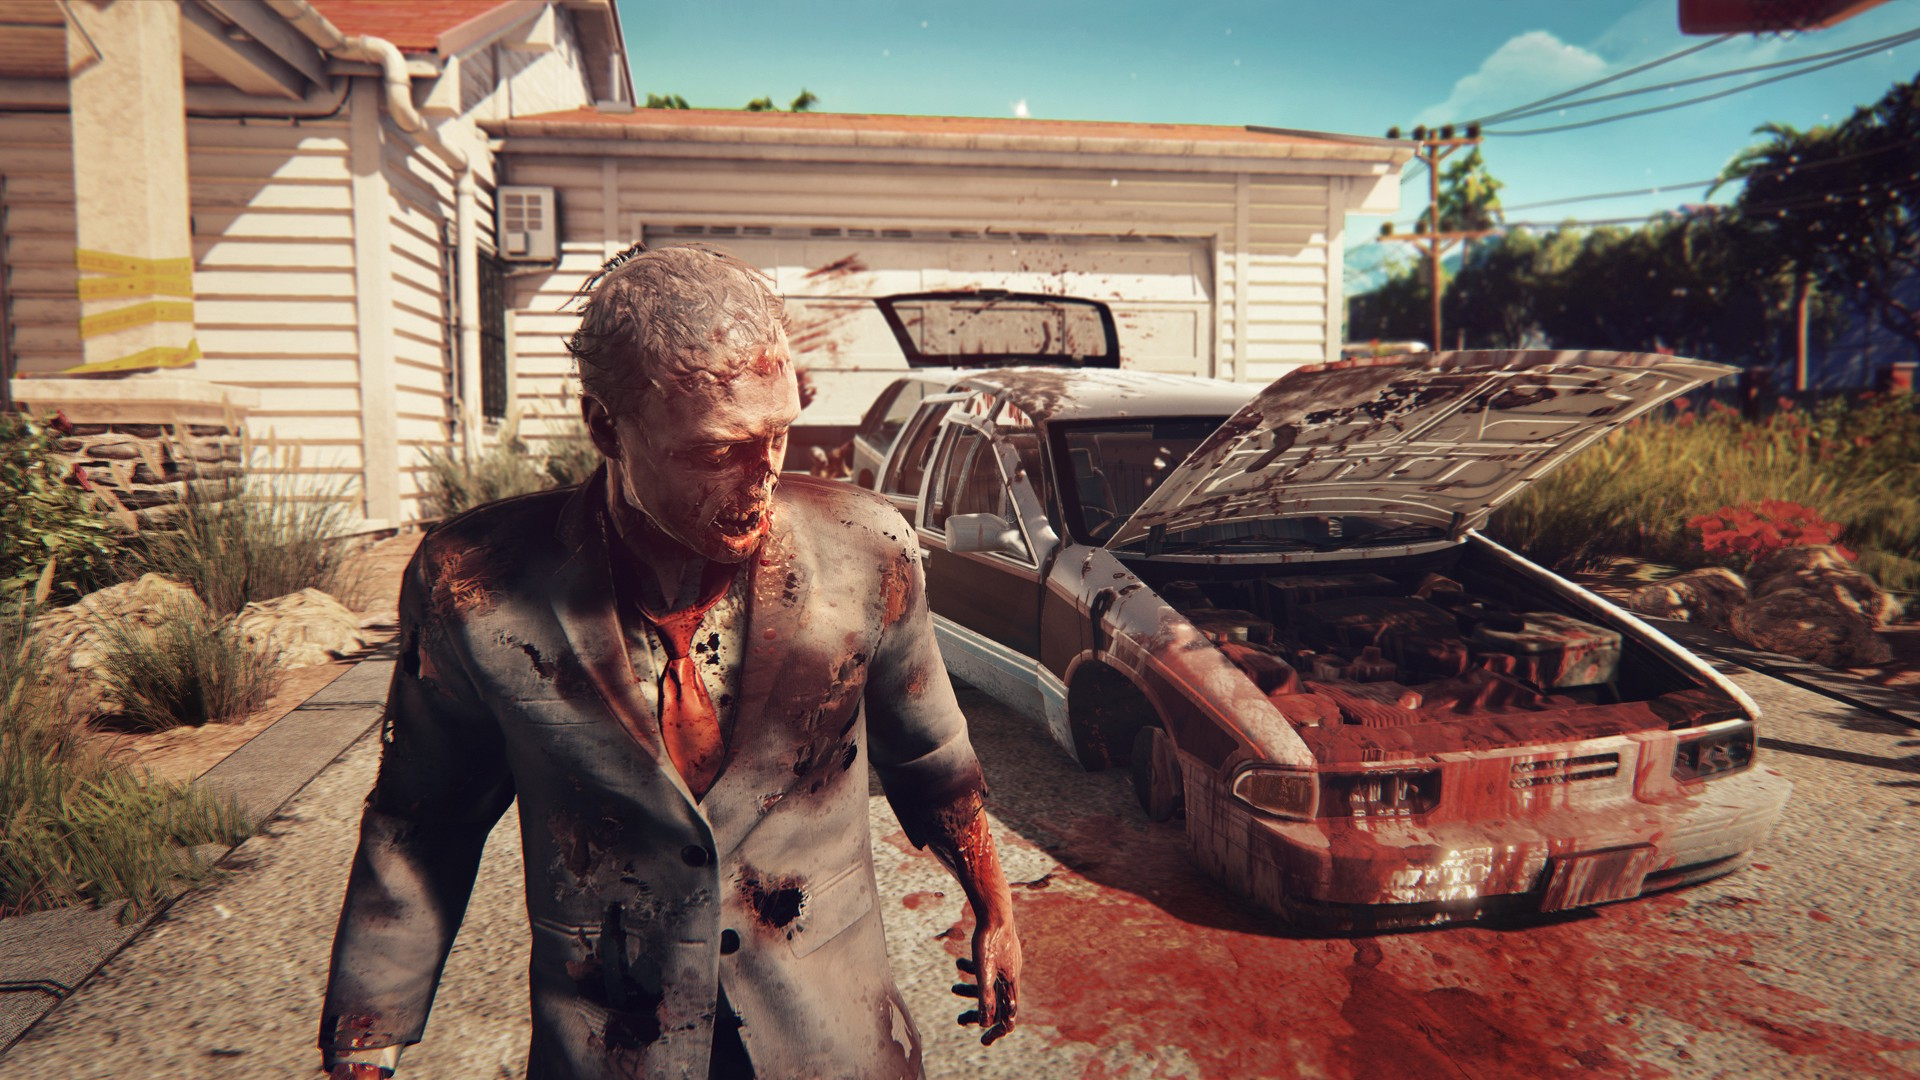 3d Game Wallpaper For Mobile Dead Island 2 Computer Game Video Games Zombies Blood